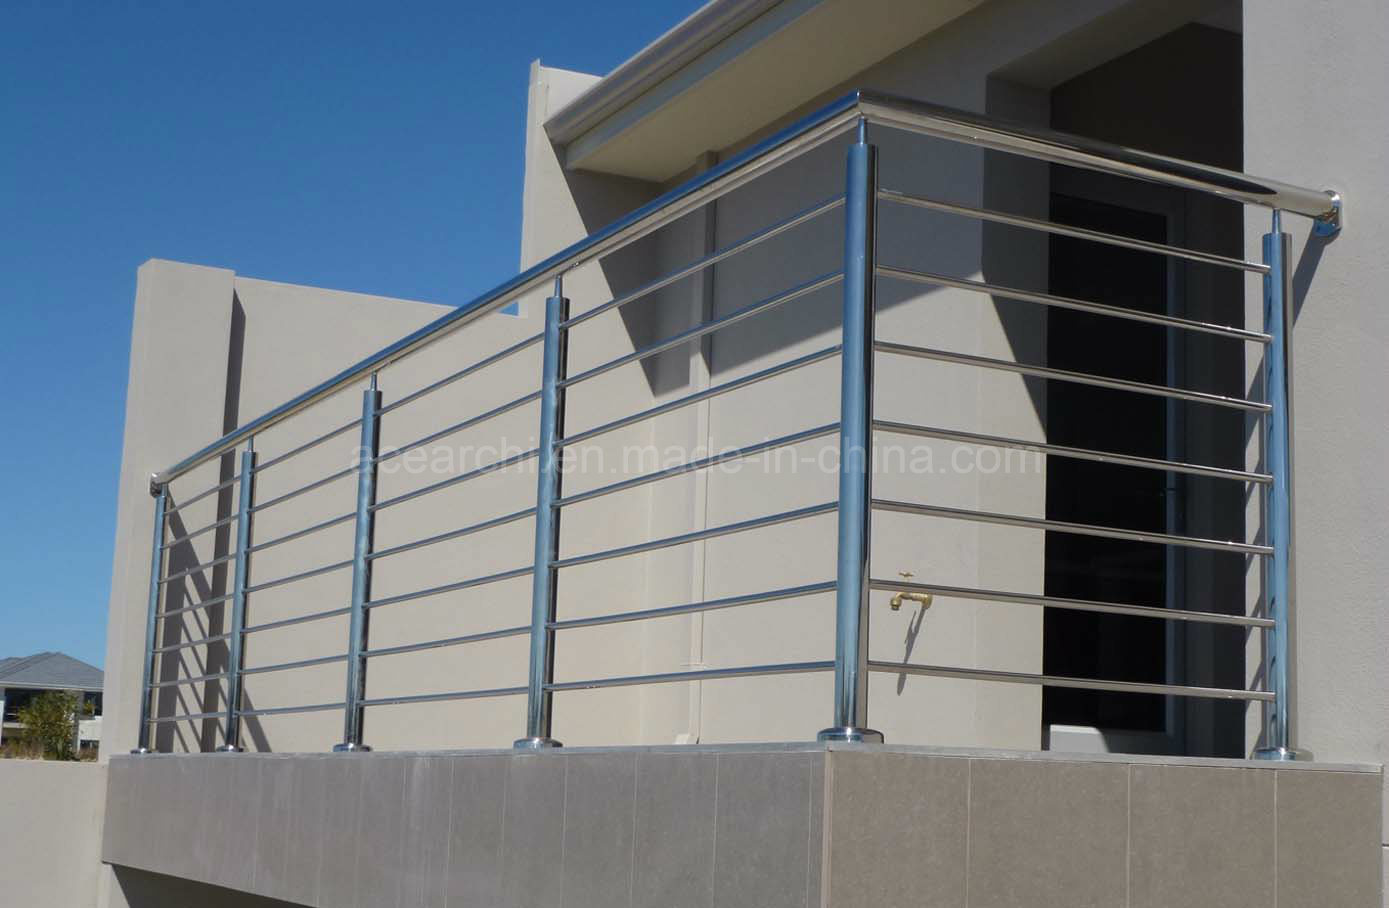 Modern Stainless Steel Rod Balustrade with America Standard for High Rise Building